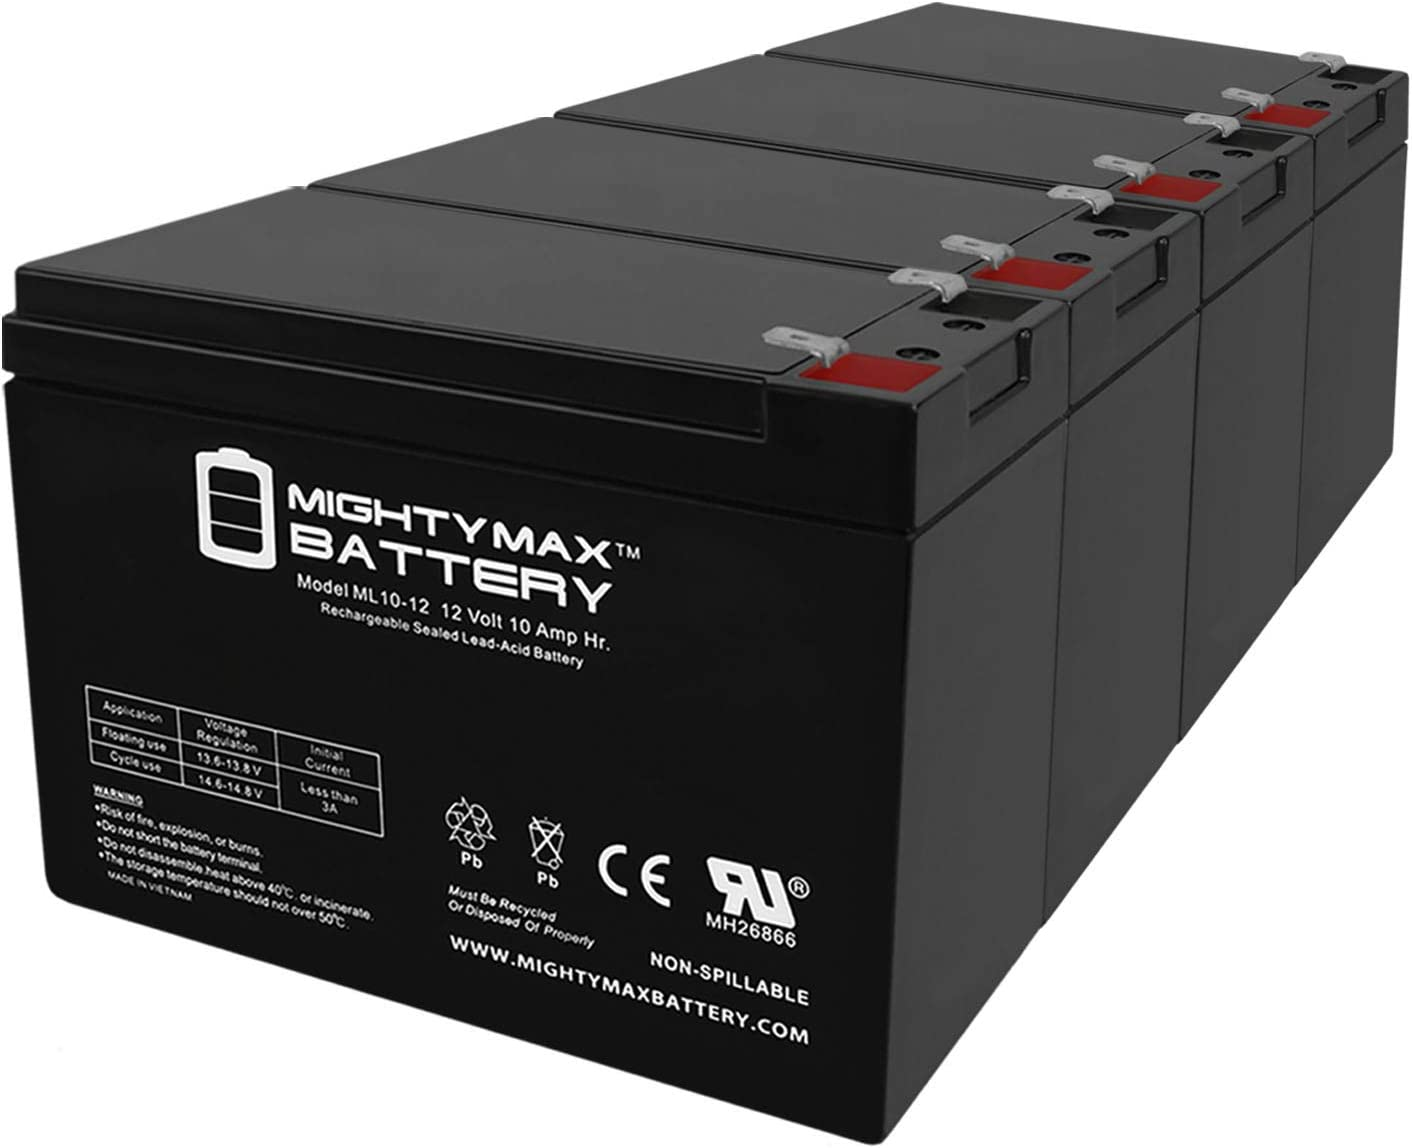 Mighty Max Battery ML10-12 - 12V 10AH 26058 CB10-12 CE5 CE6 MA 2.0 Lawn Mower Battery - 4 Pack Brand Product